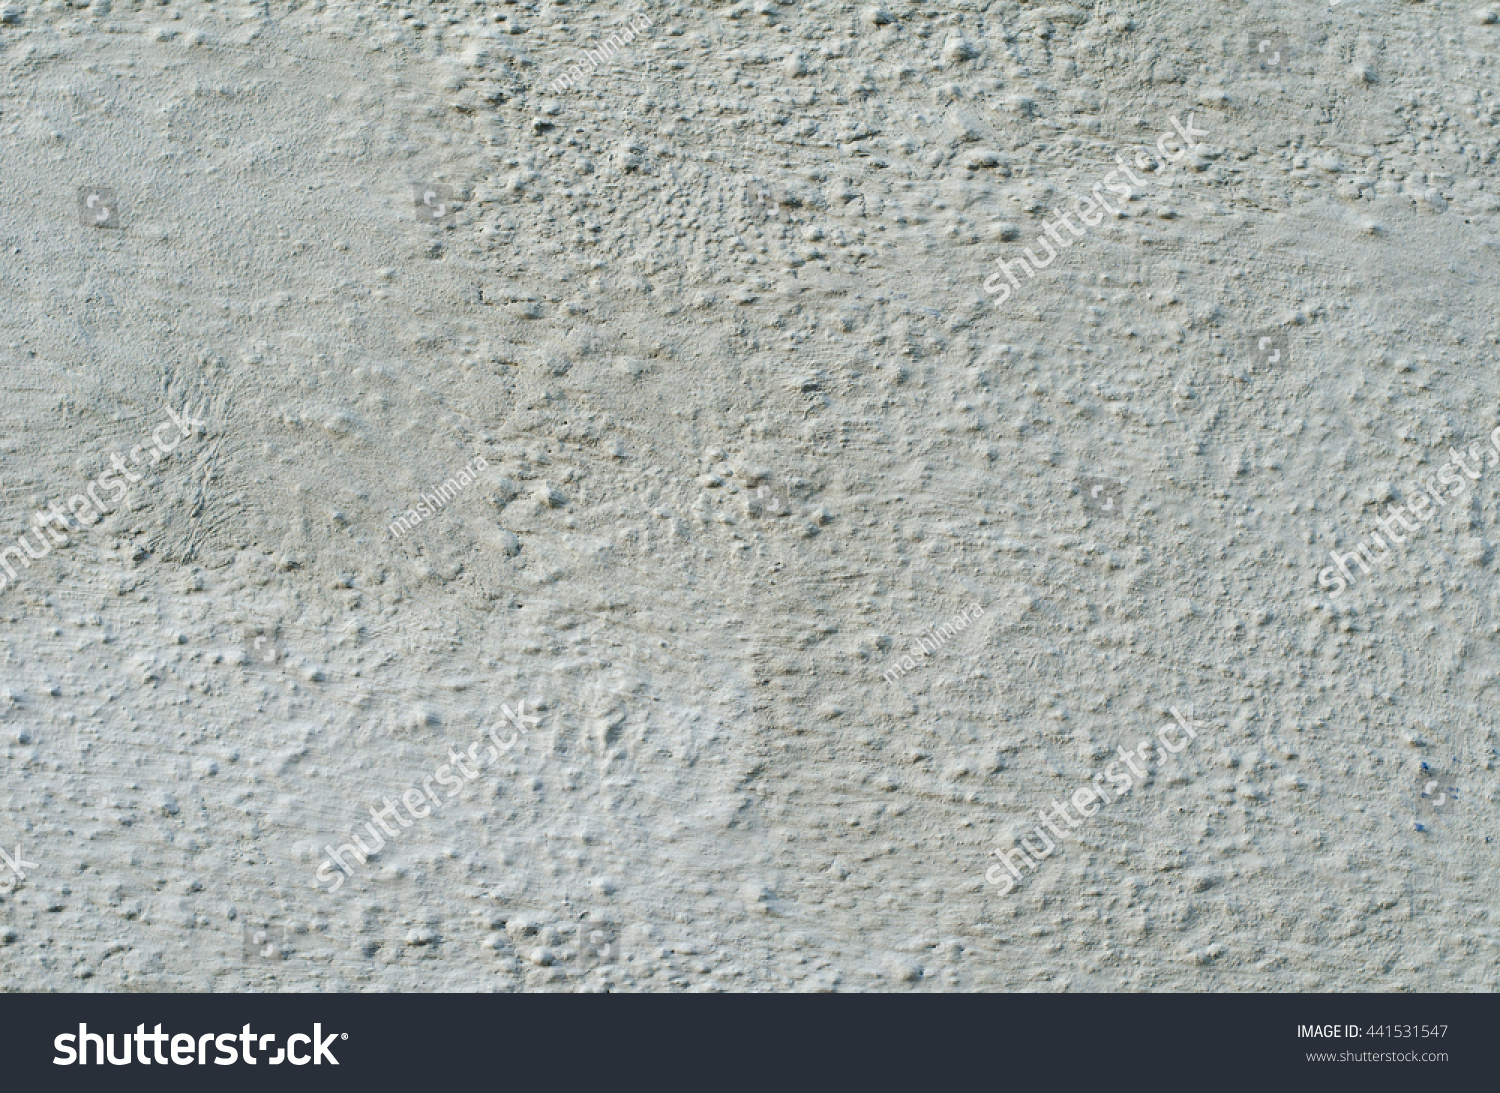 Background white stucco coated painted exterior stock for Exterior background